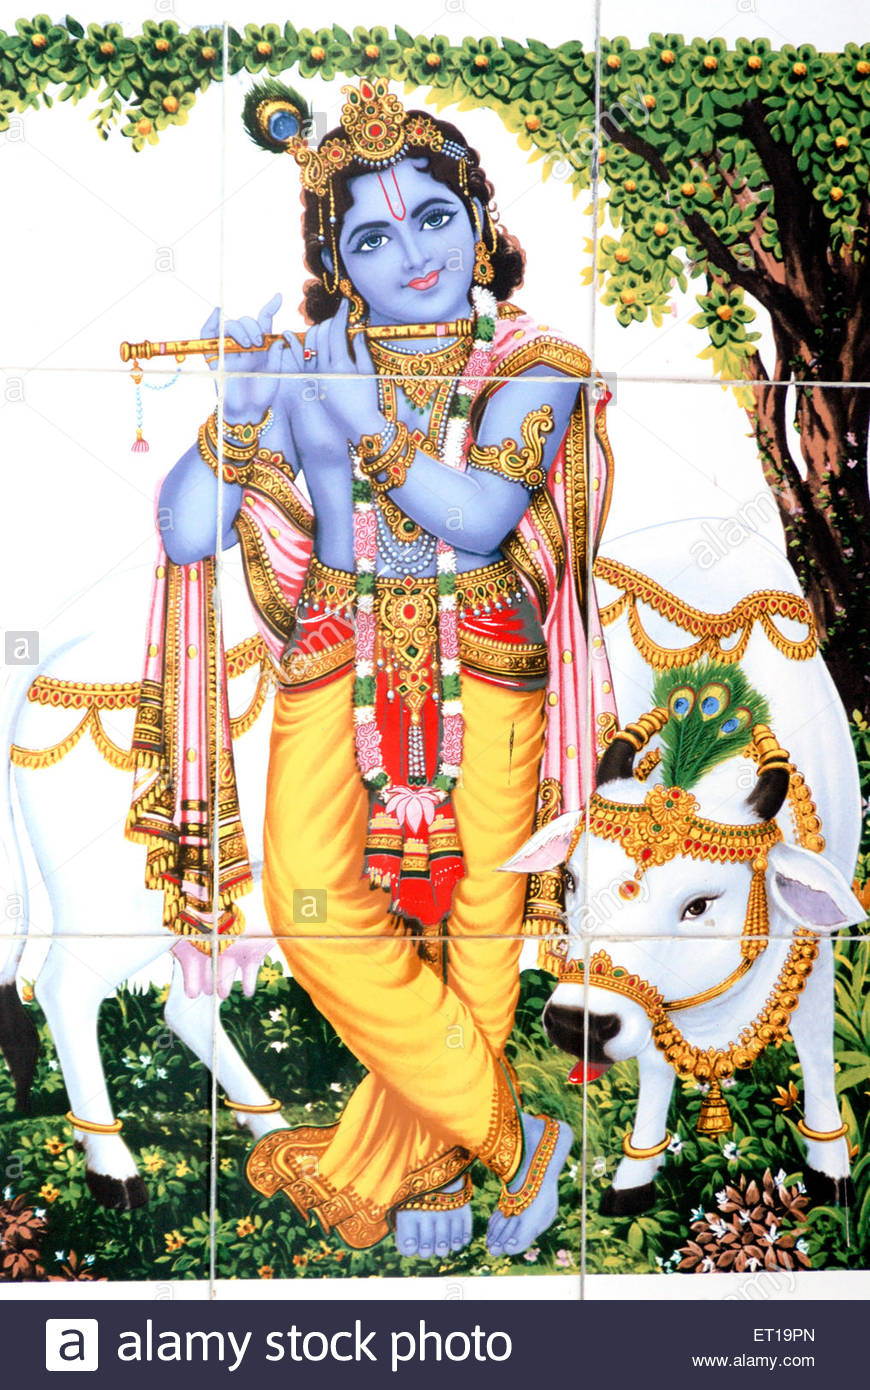 Krishna With Cow Png - God shri krishna with flute and cow painted on white tiles ; Amreli ;  Gujarat ;